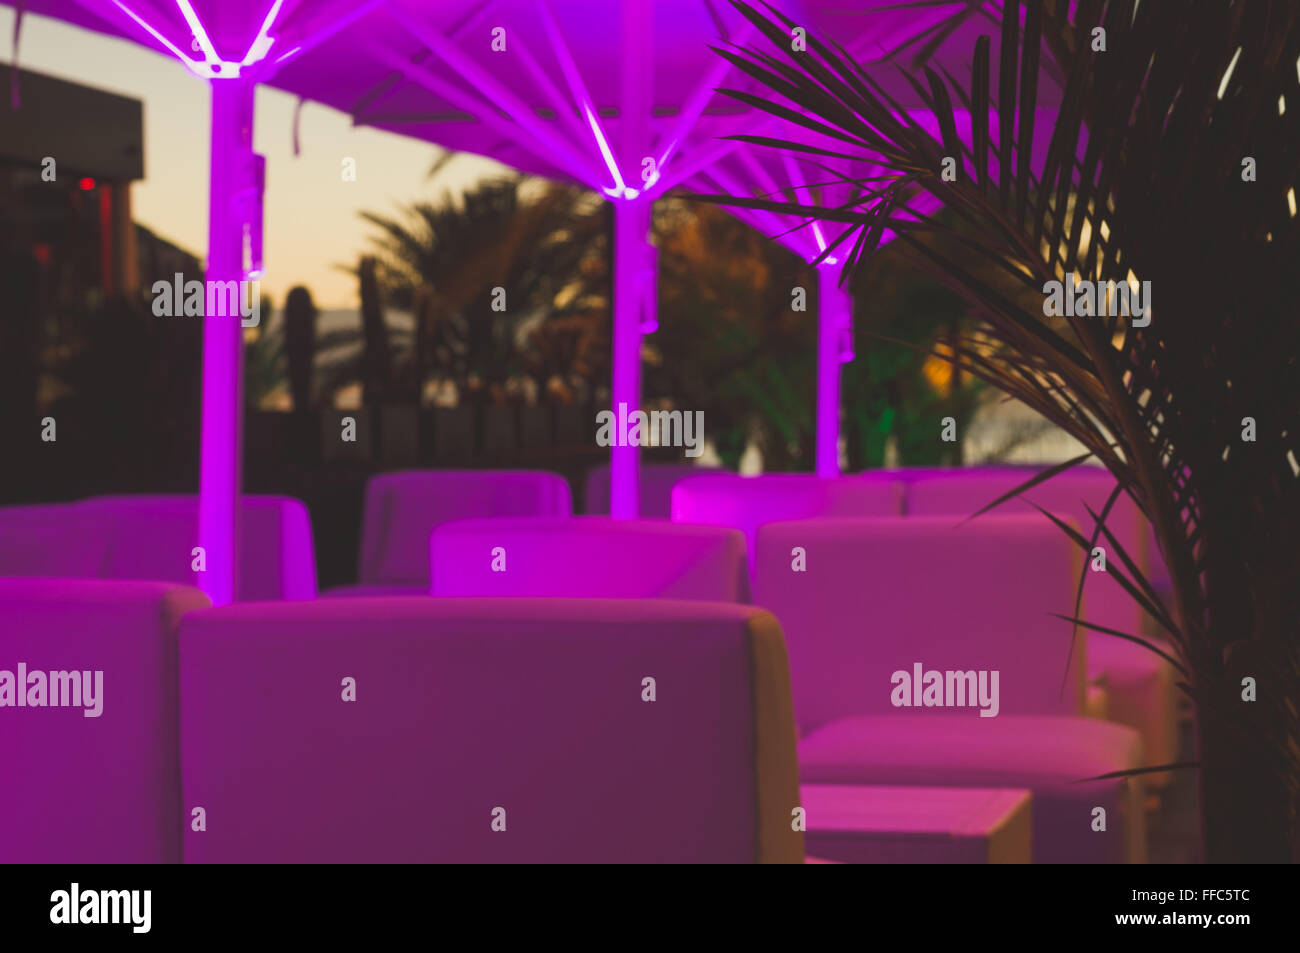 Outdoor cafe by night illuminated with neon lights stock photo outdoor cafe by night illuminated with neon lights workwithnaturefo